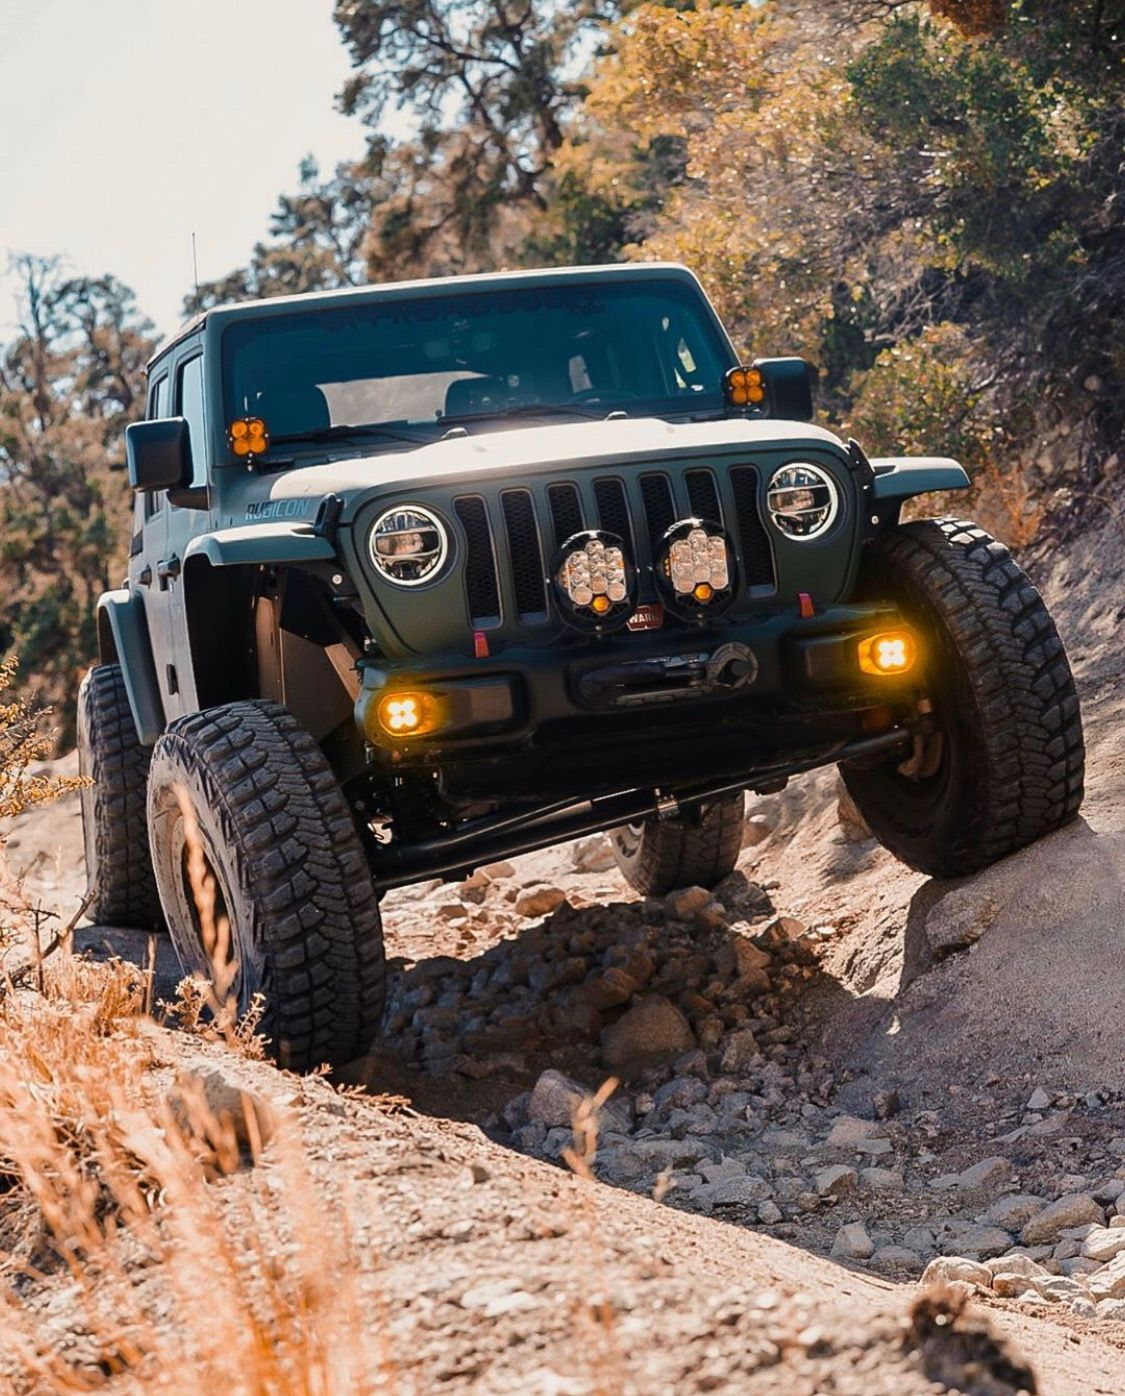 Hit The Trails Californiaroamer Lifted Jeep Wrangler Rubicon Jl Jeep Wrangler Lifted Jeep